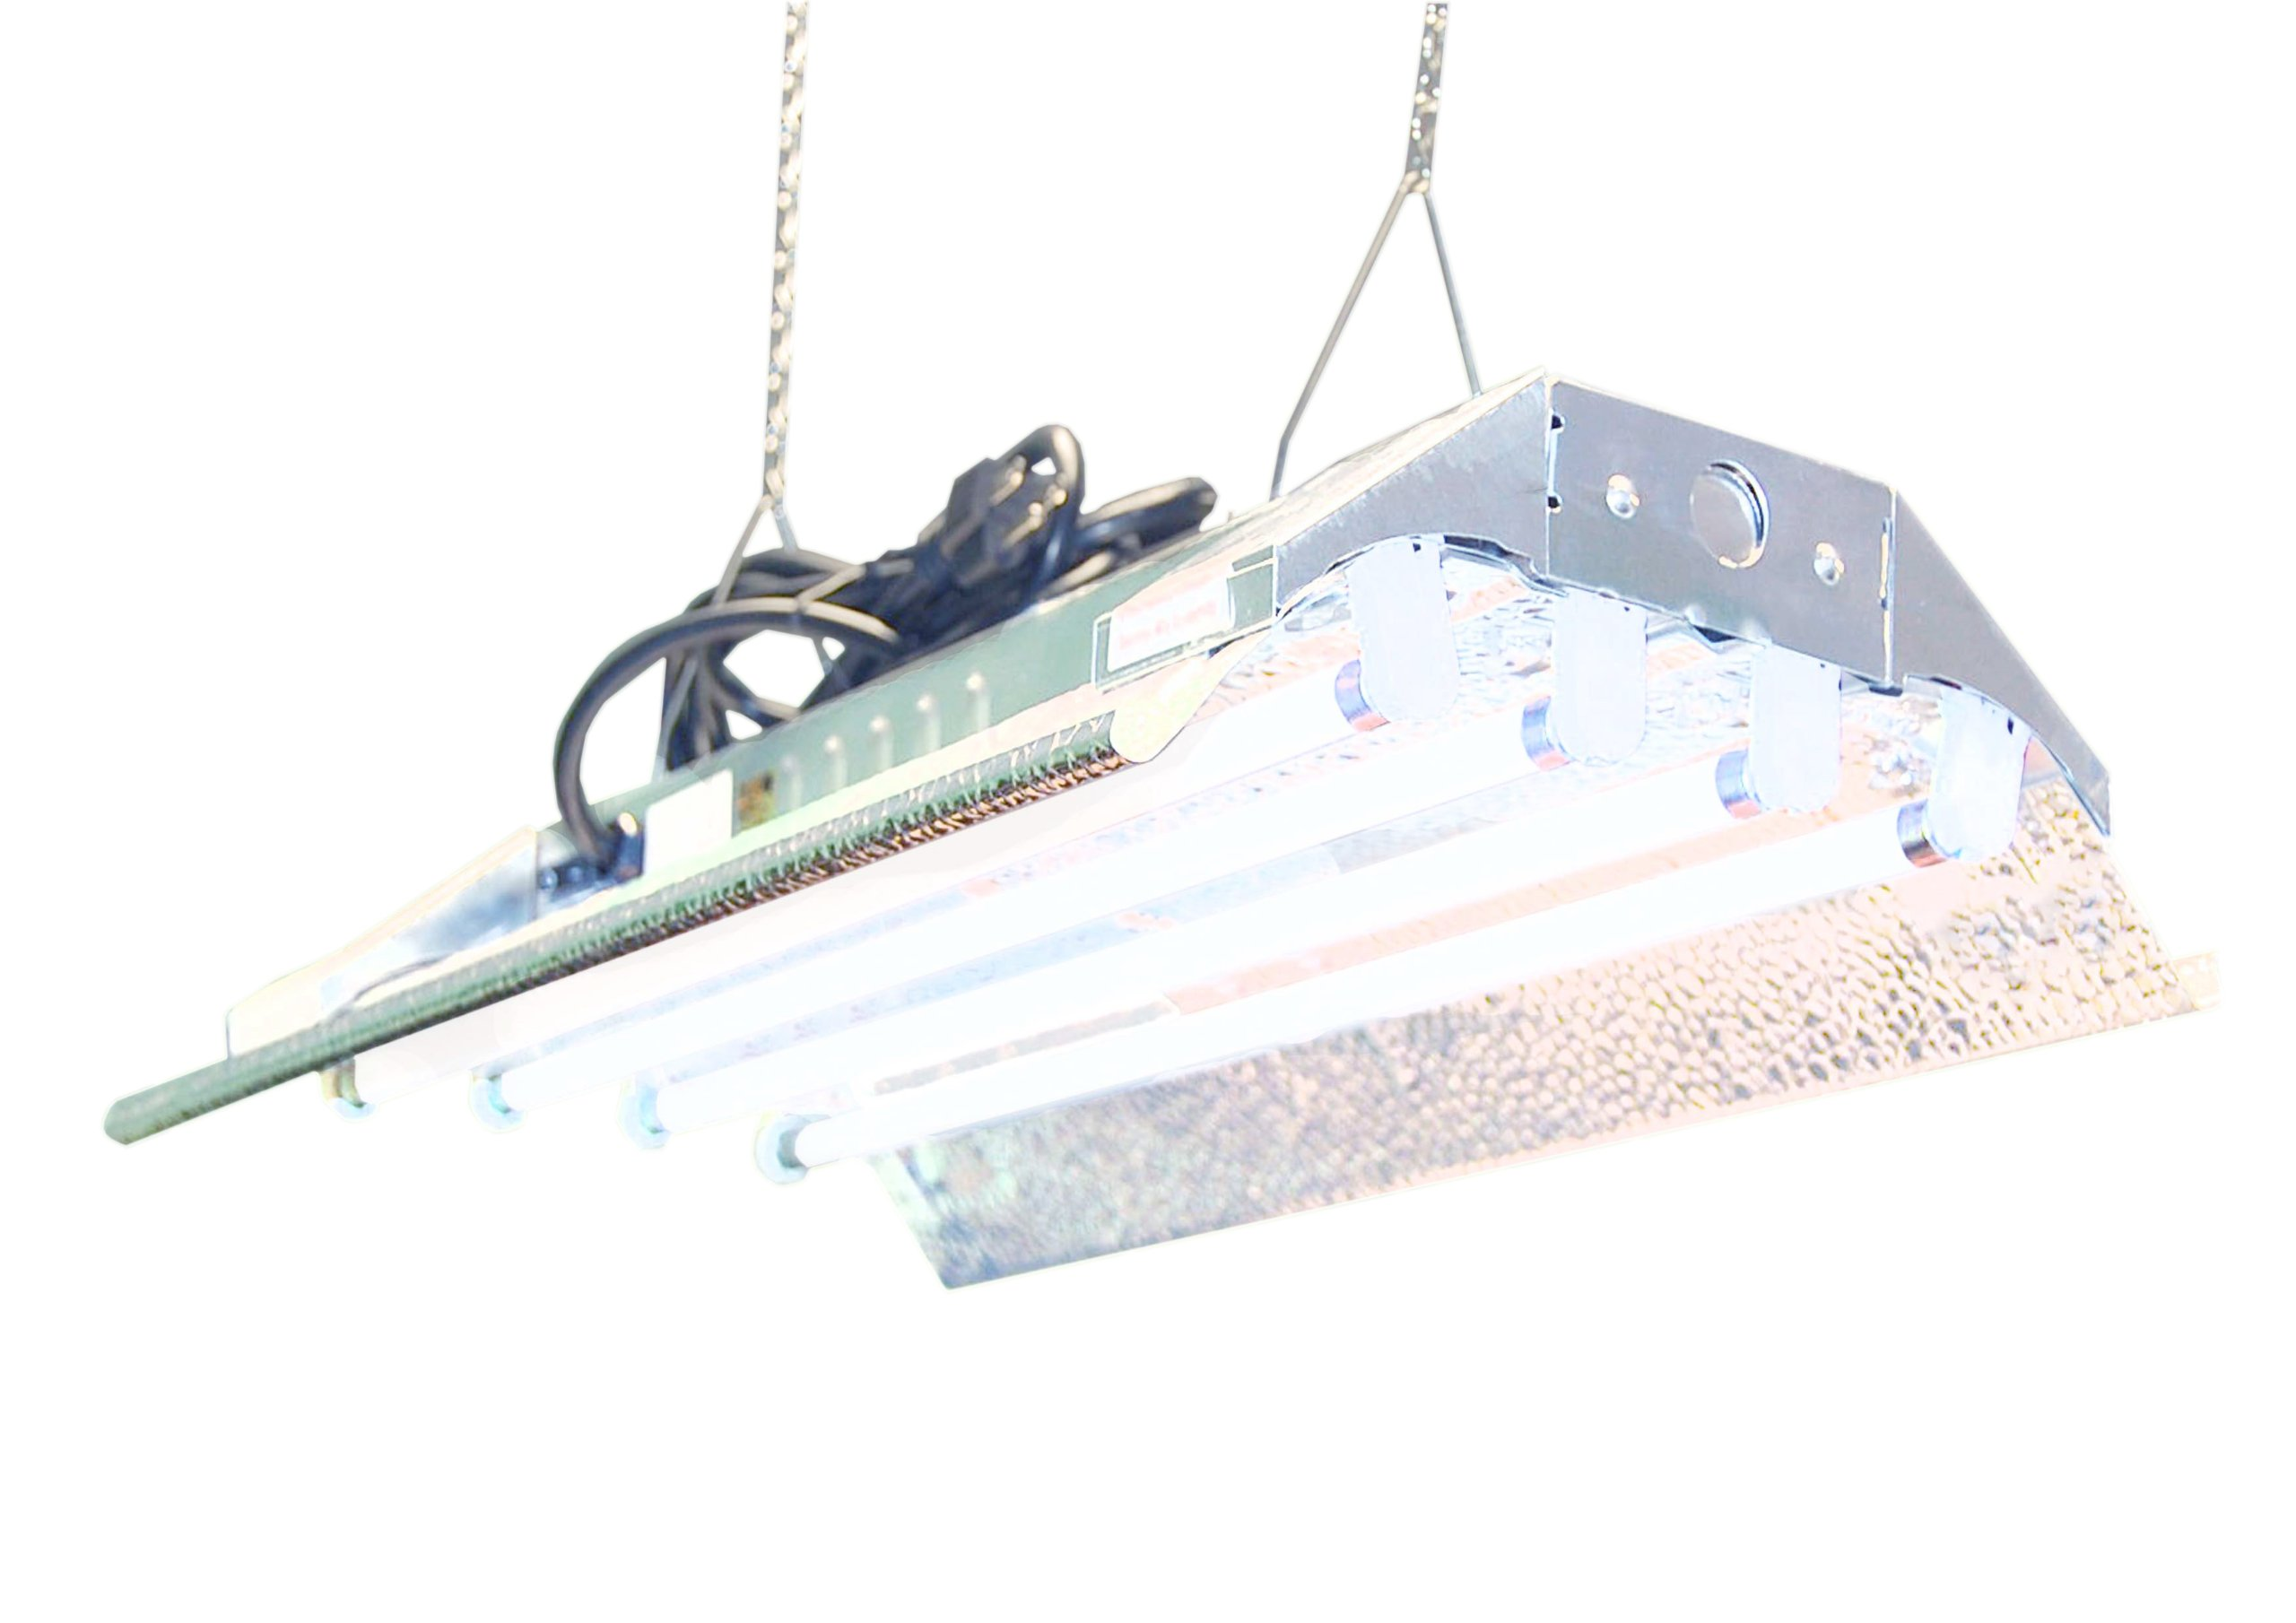 T5 Grow Light (2ft 4lamps) DL824 Ho Fluorescent Hydroponic Bloom Veg Daisy Chain with Bulbs by DuroLux